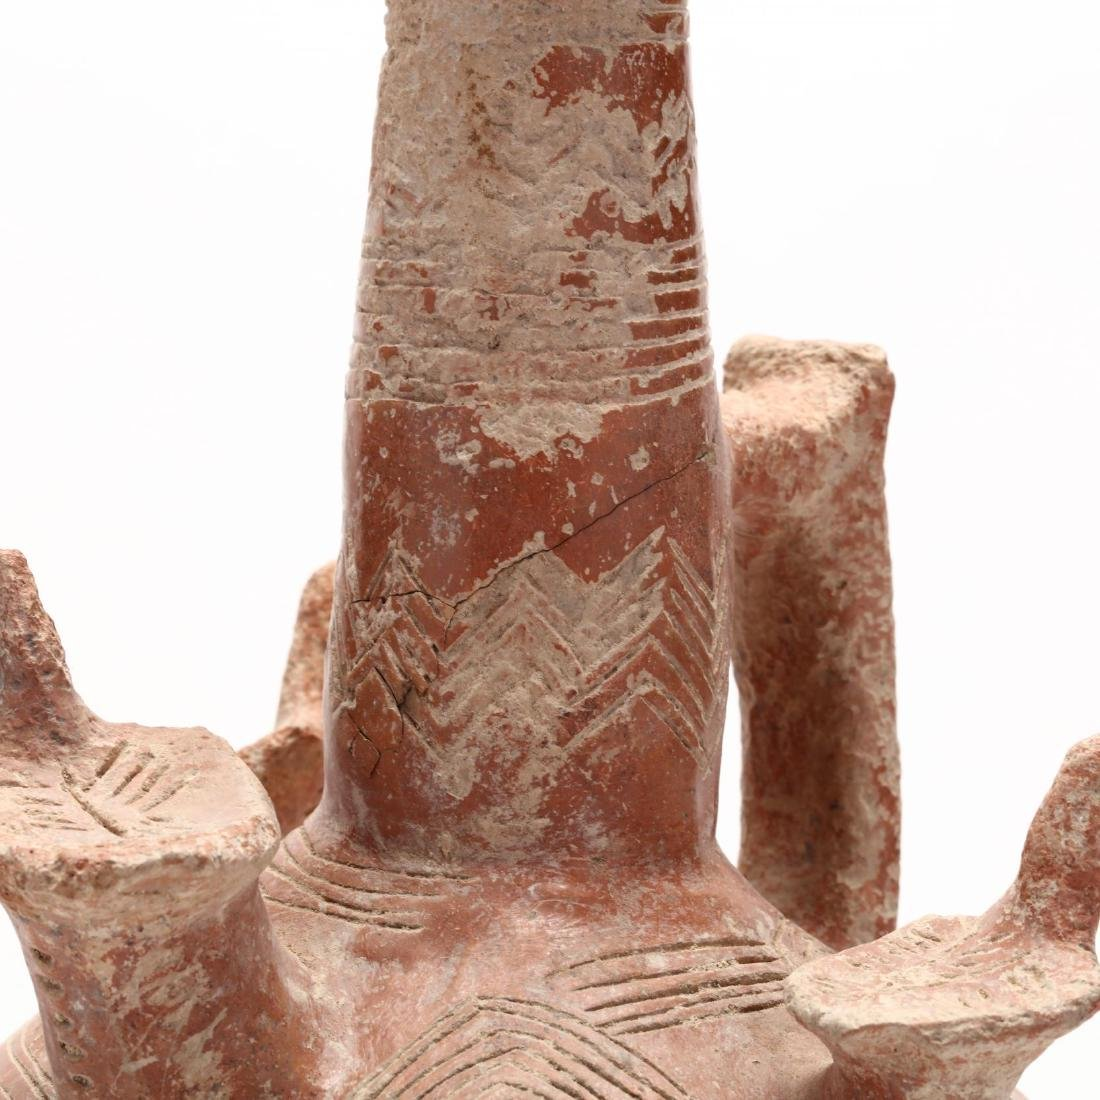 Cypriot Bronze Age Polished Red Ware Vessel - 4